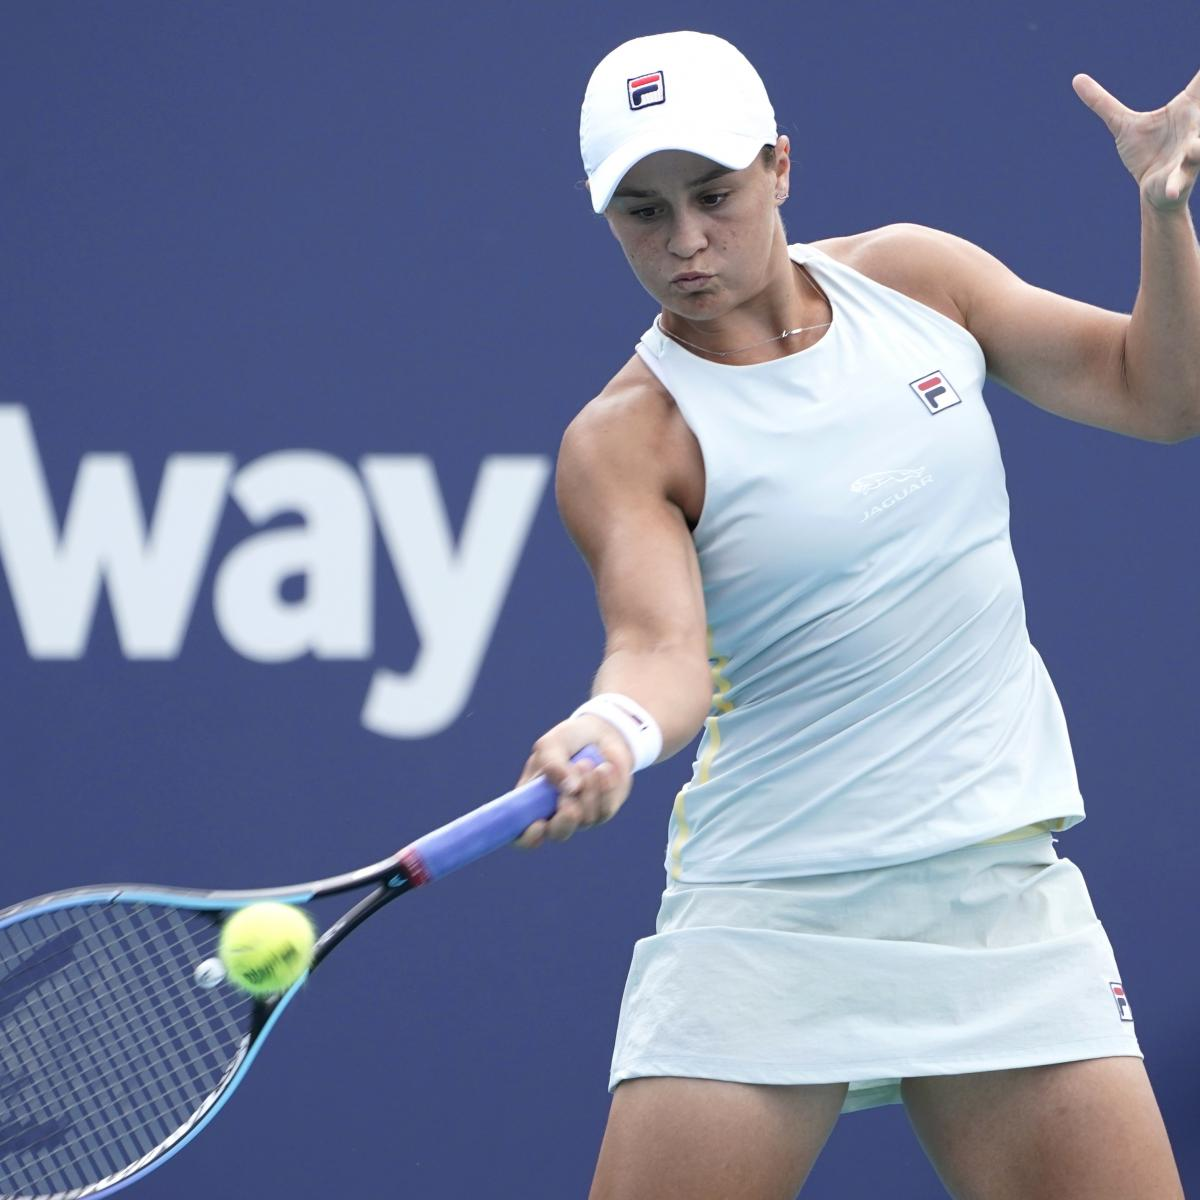 Miami Open Masters 2021 Results: No. 1 Ashleigh Barty Advances to Women's Final thumbnail